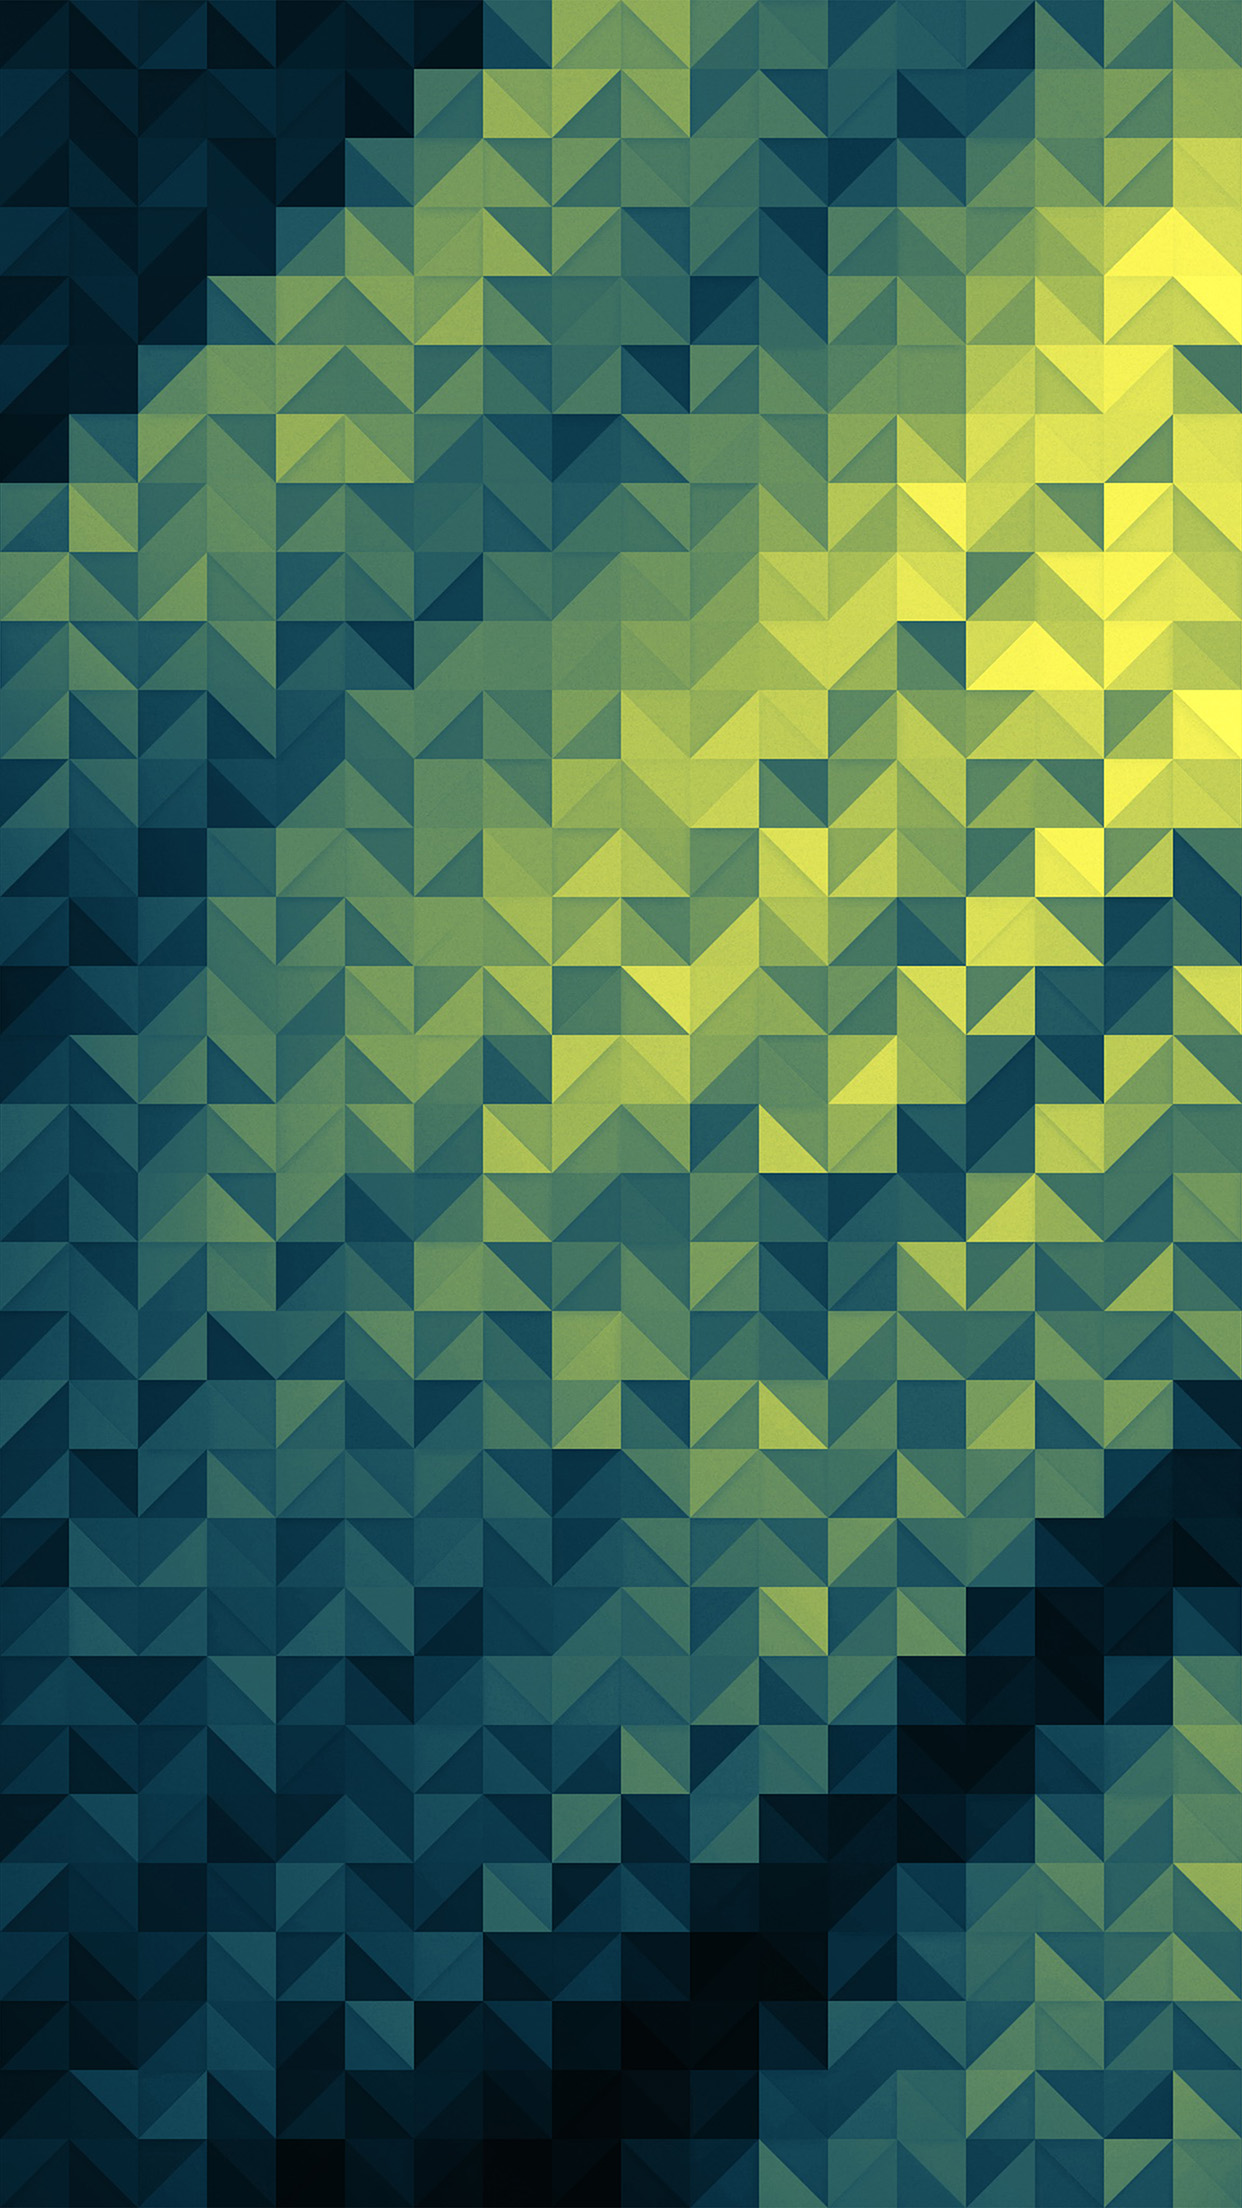 Wallpapers Of The Week: Geometric Patterns